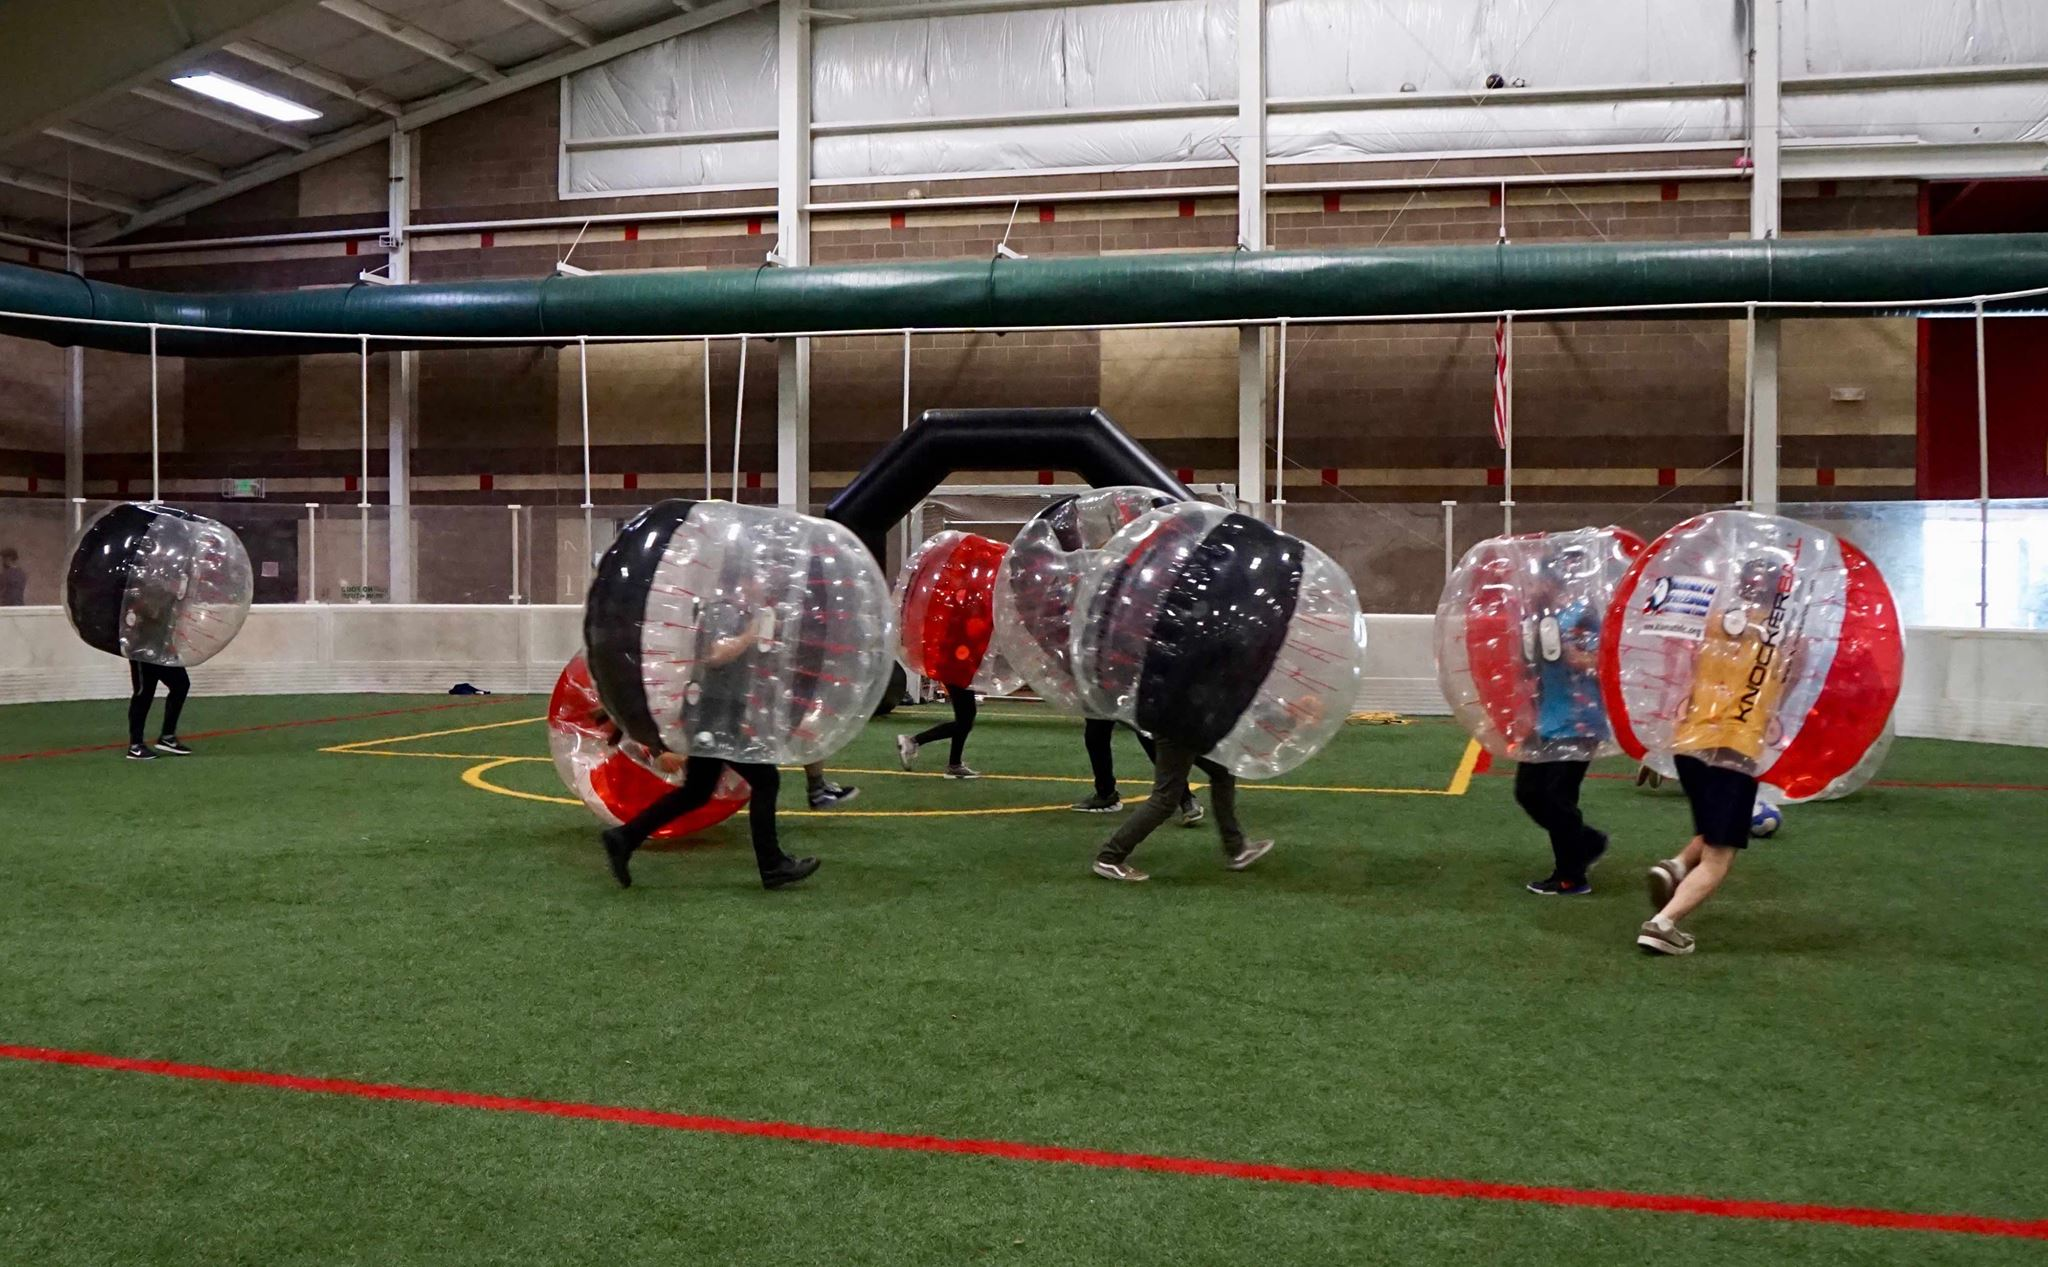 Knockerball at Mike's Fieldhouse. (facebook.com/mikesfieldhouse/)